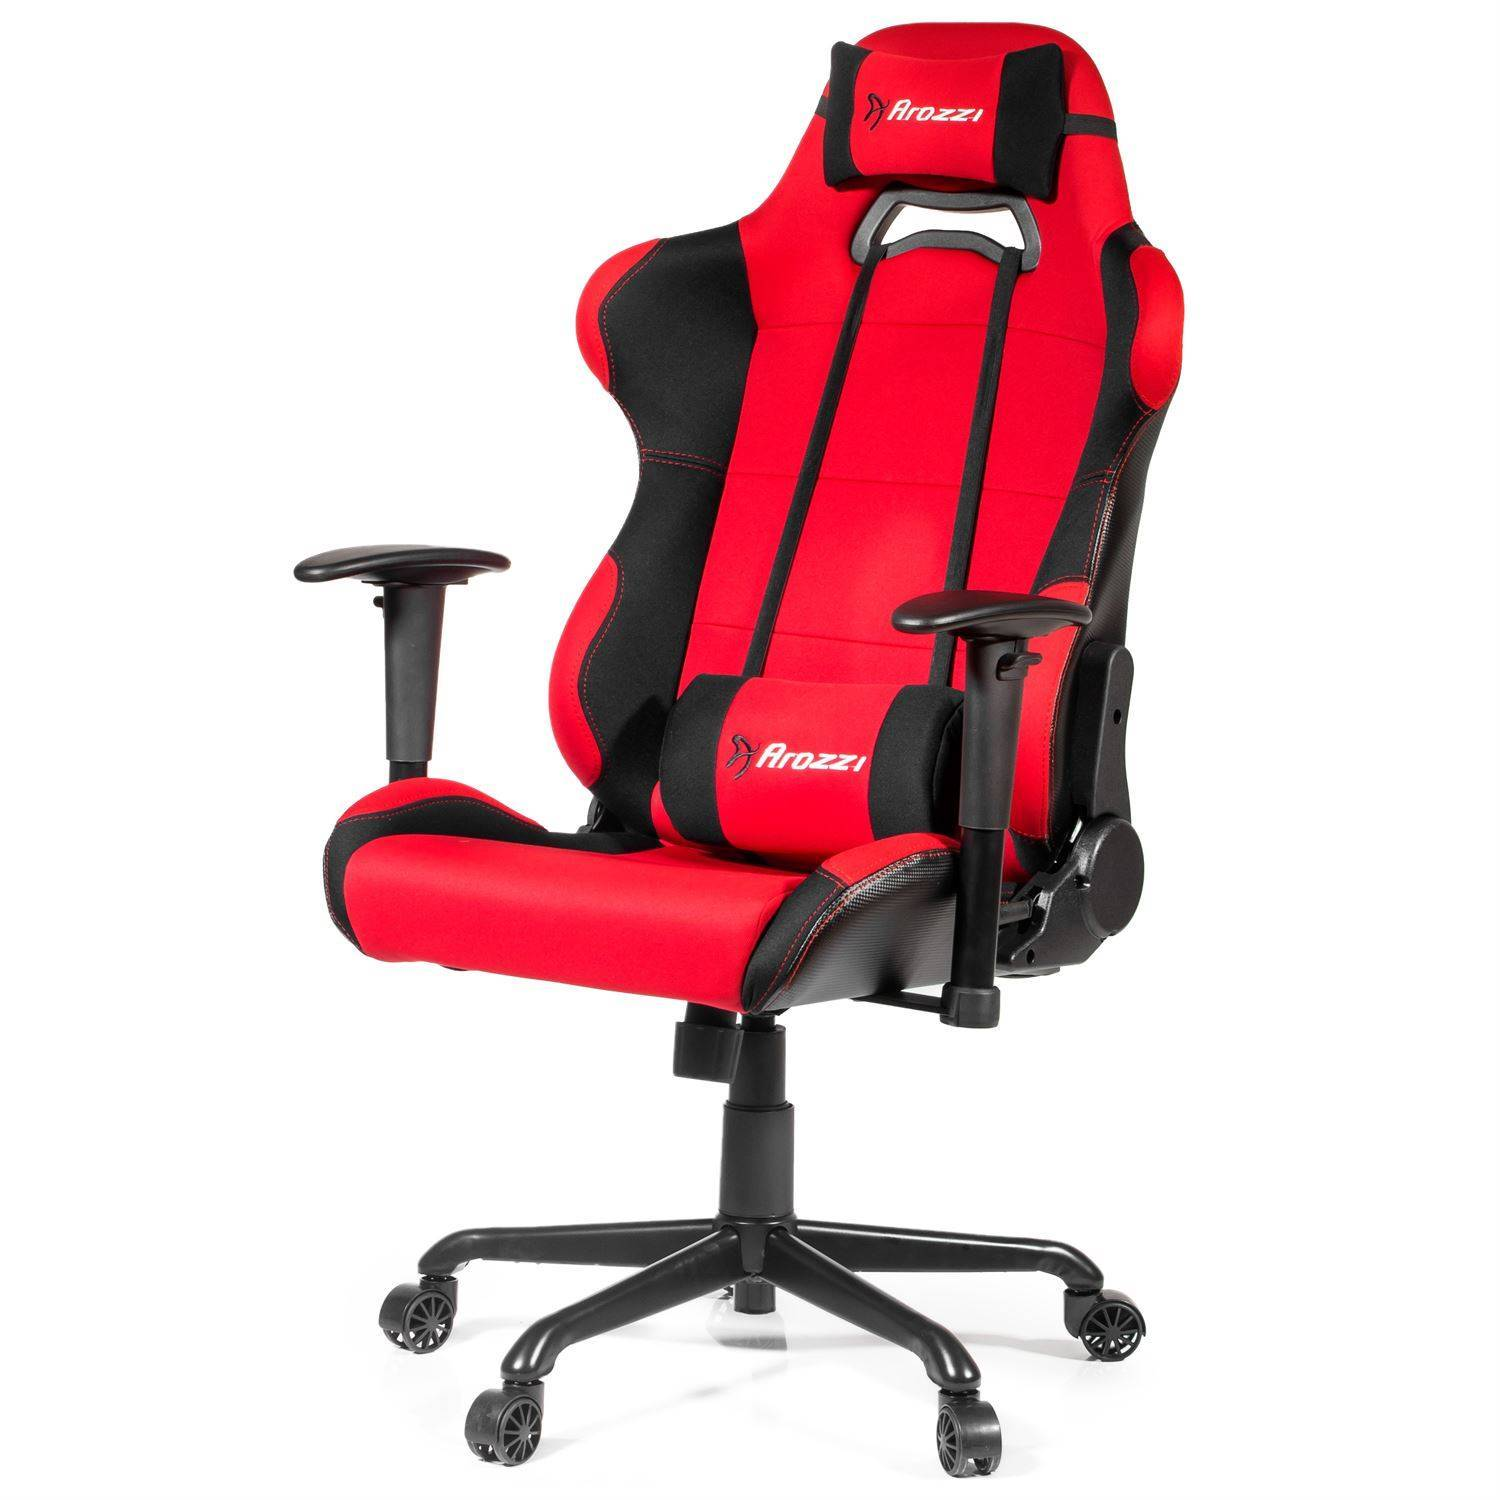 Arozzi Torretta Xl Gaming Chair Red K 248 B Hos Webdanes Dk